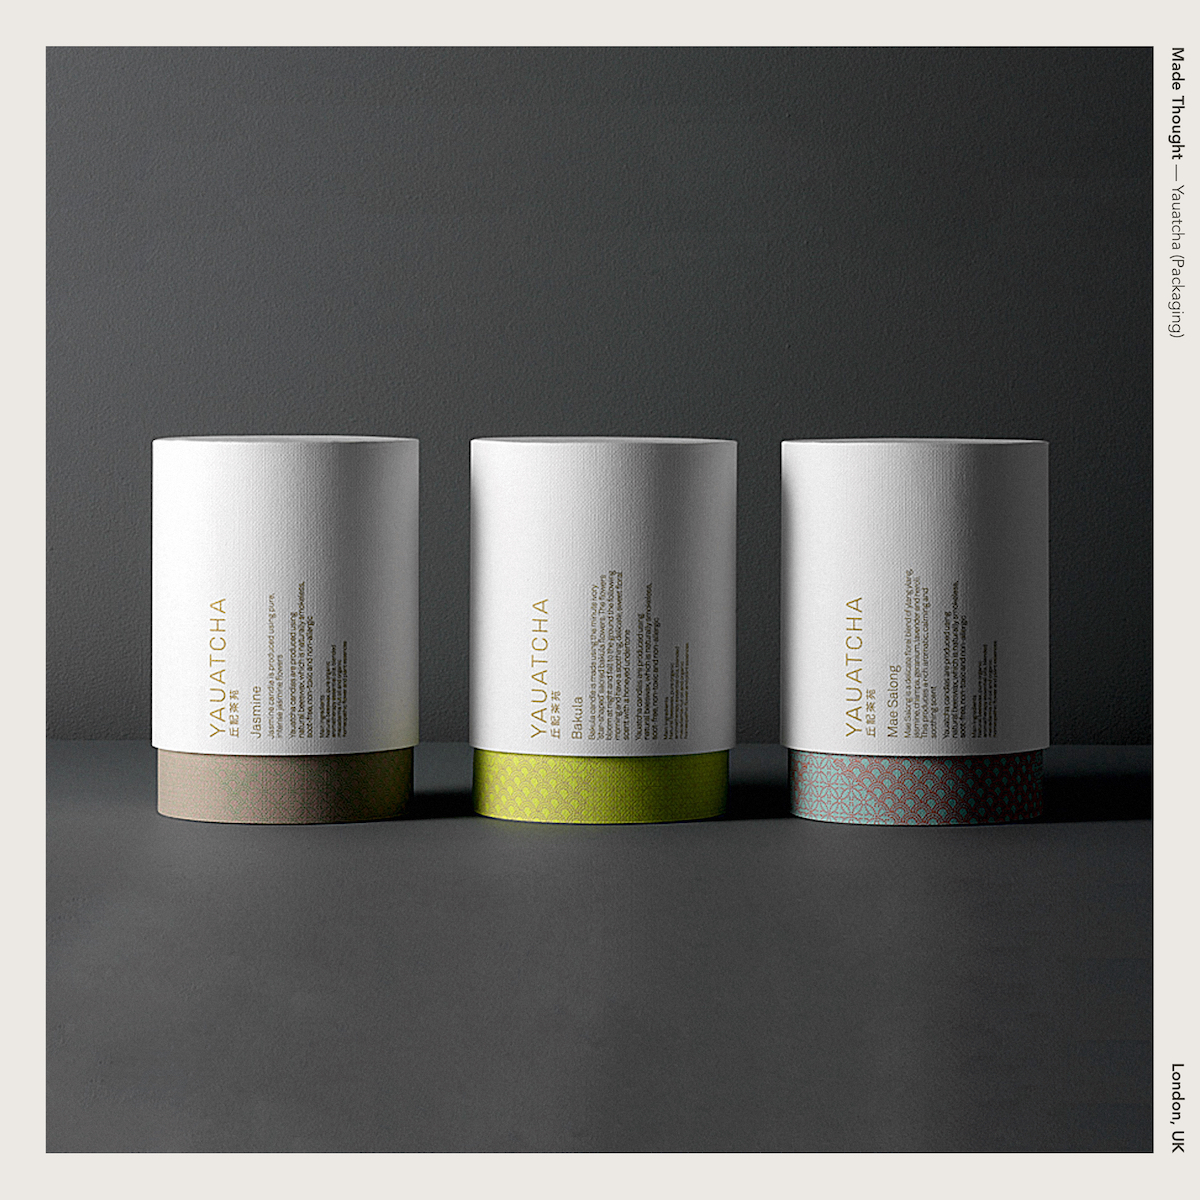 Made Thought — Yauatcha (Packaging)